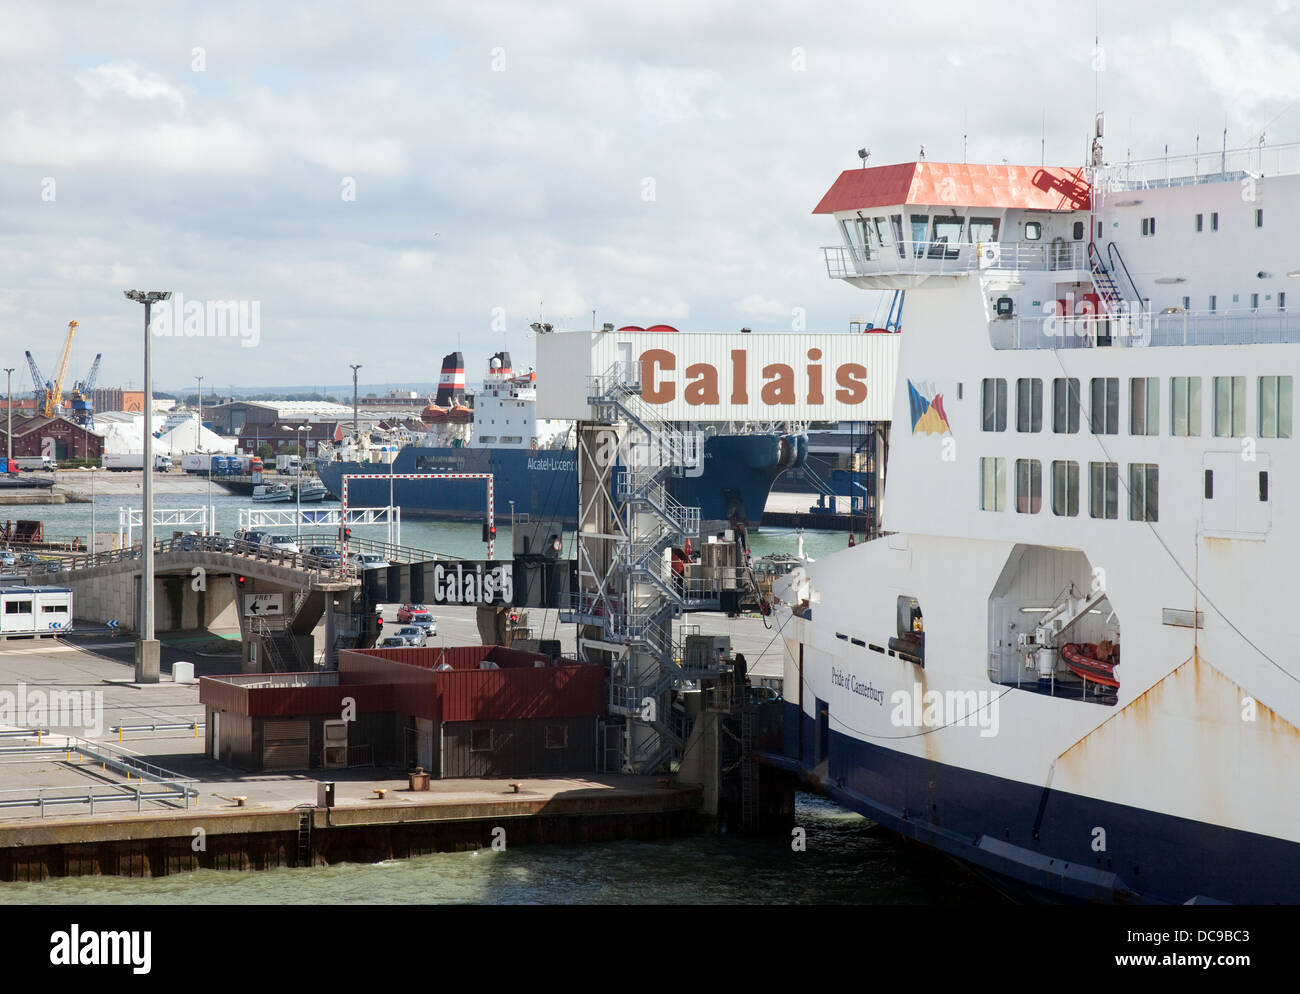 Calais port and ferry, France, Europe - Stock Image